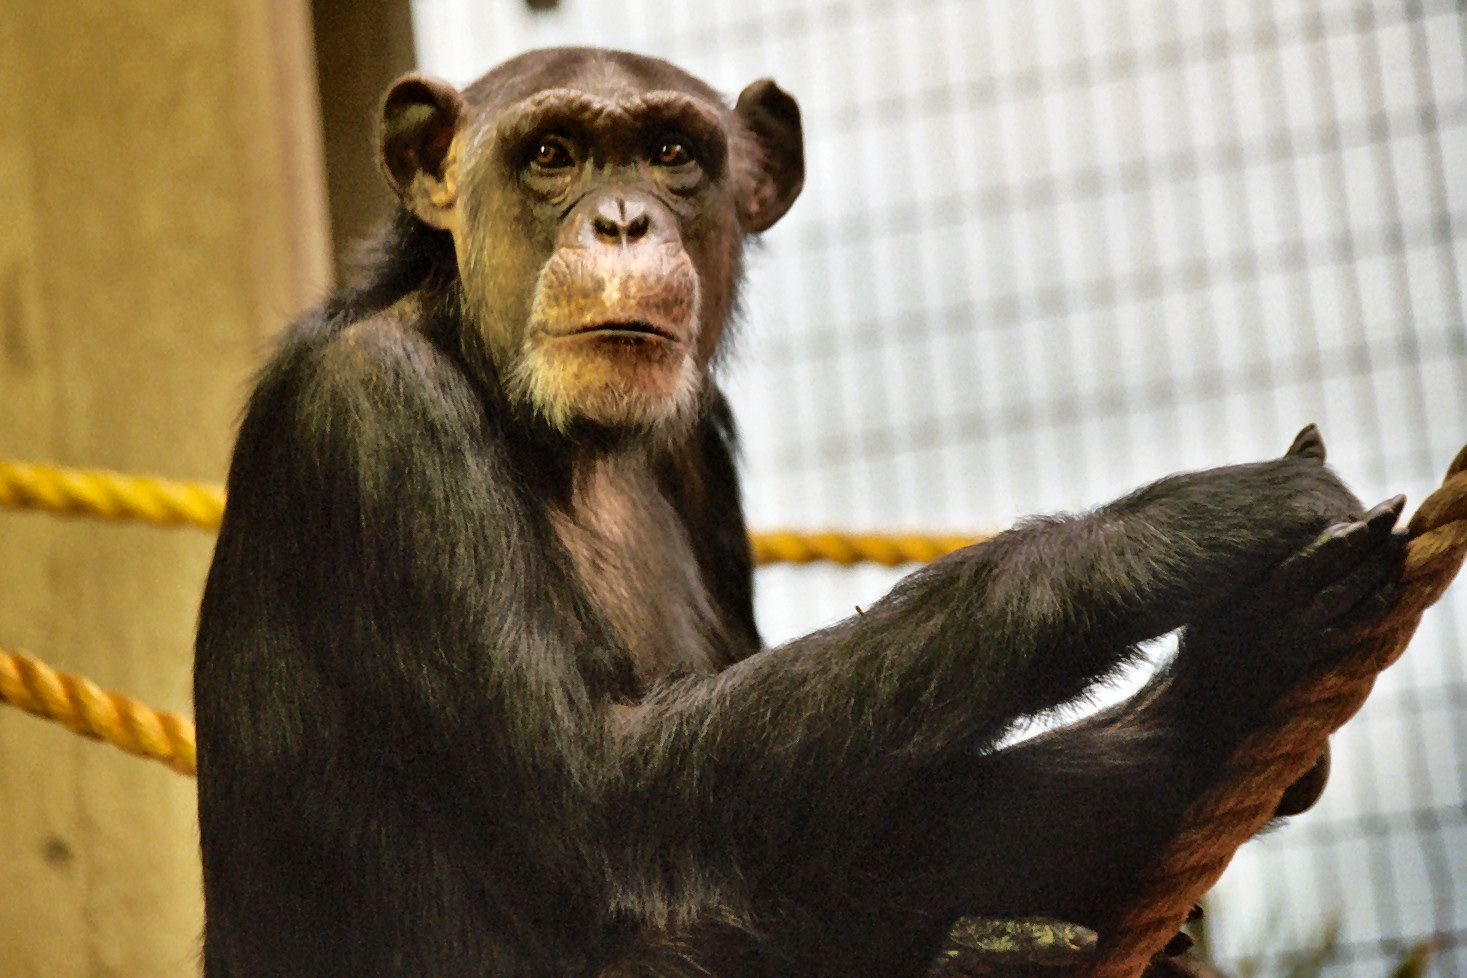 Olivia Sprauer   Chimpanzee at Metroparks Zoo in Cleveland, OH.